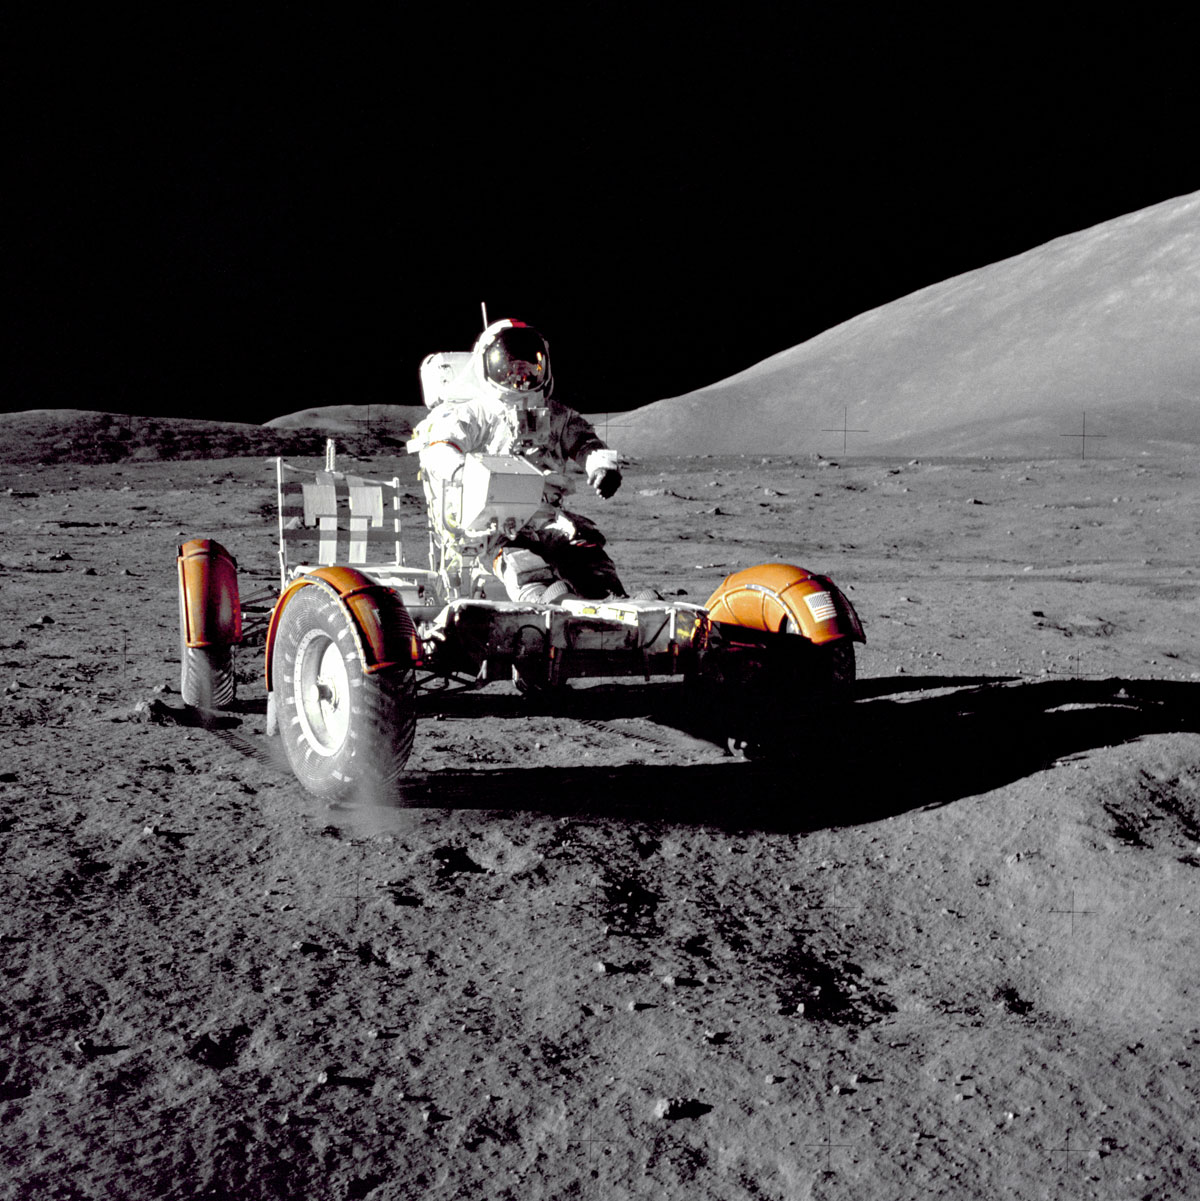 rover on the moon nasa apollo 17 Picture of the Day: Your Car Photo is Inferior